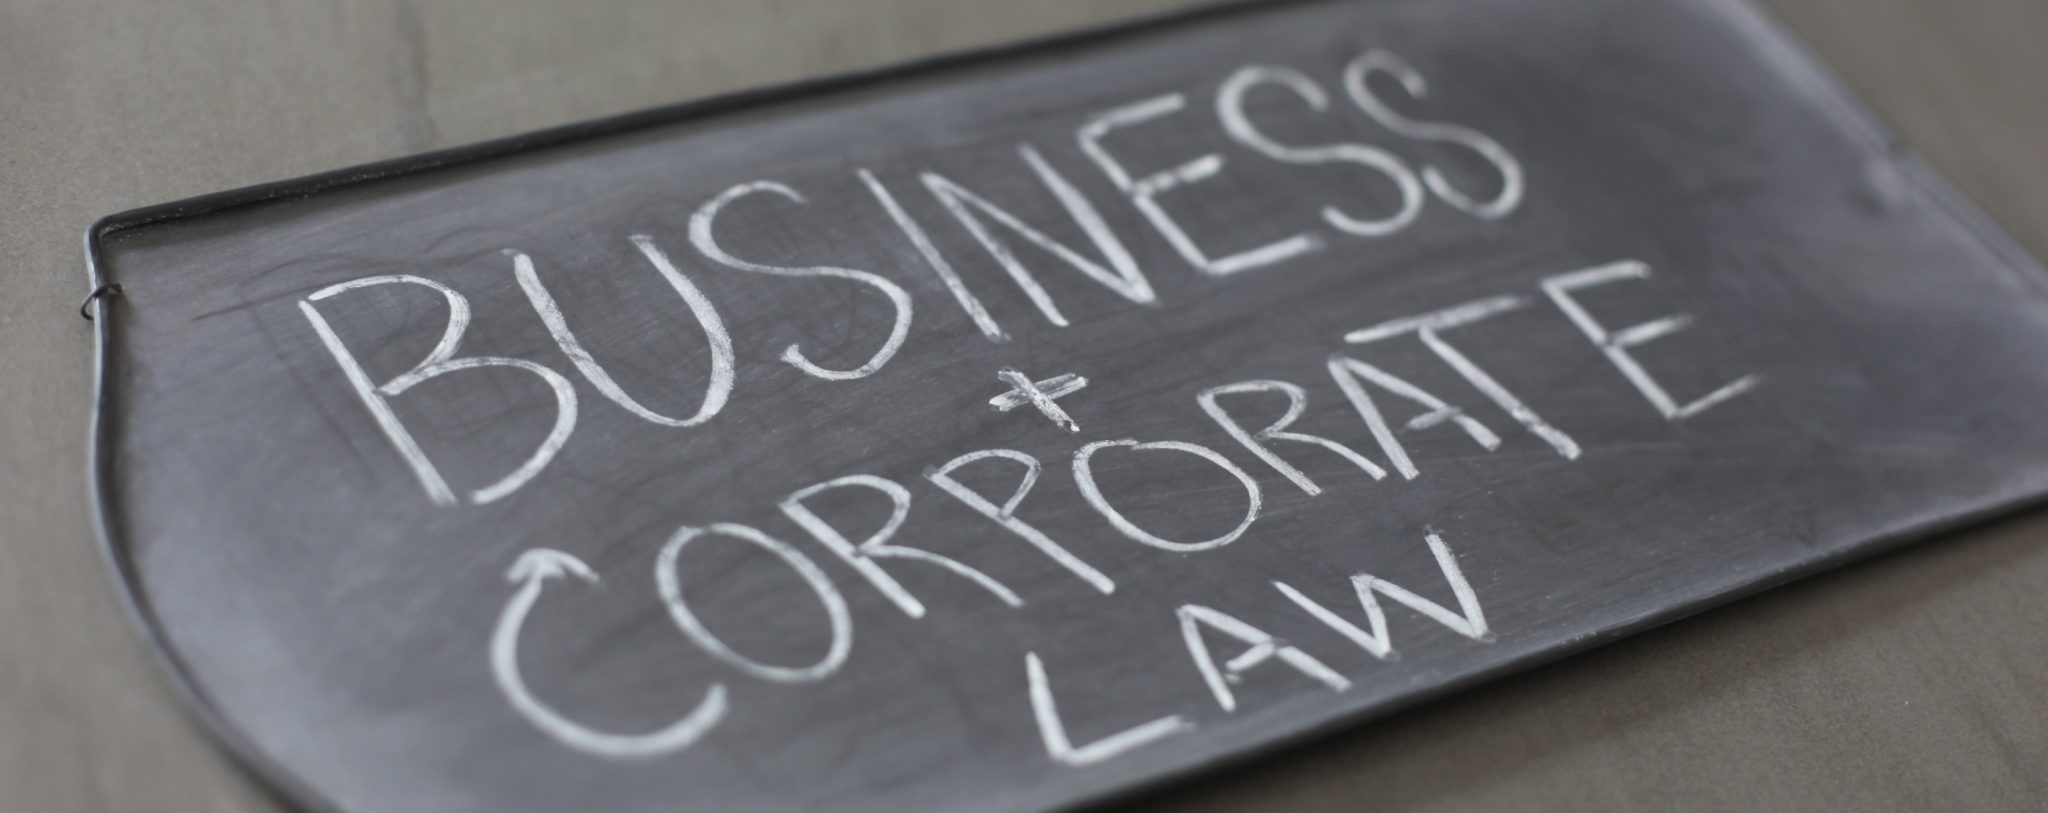 business law i Definition of law: a recognized causal  you must be sure to follow every law and regulation when you are running your business so no fines are levied 17 people.